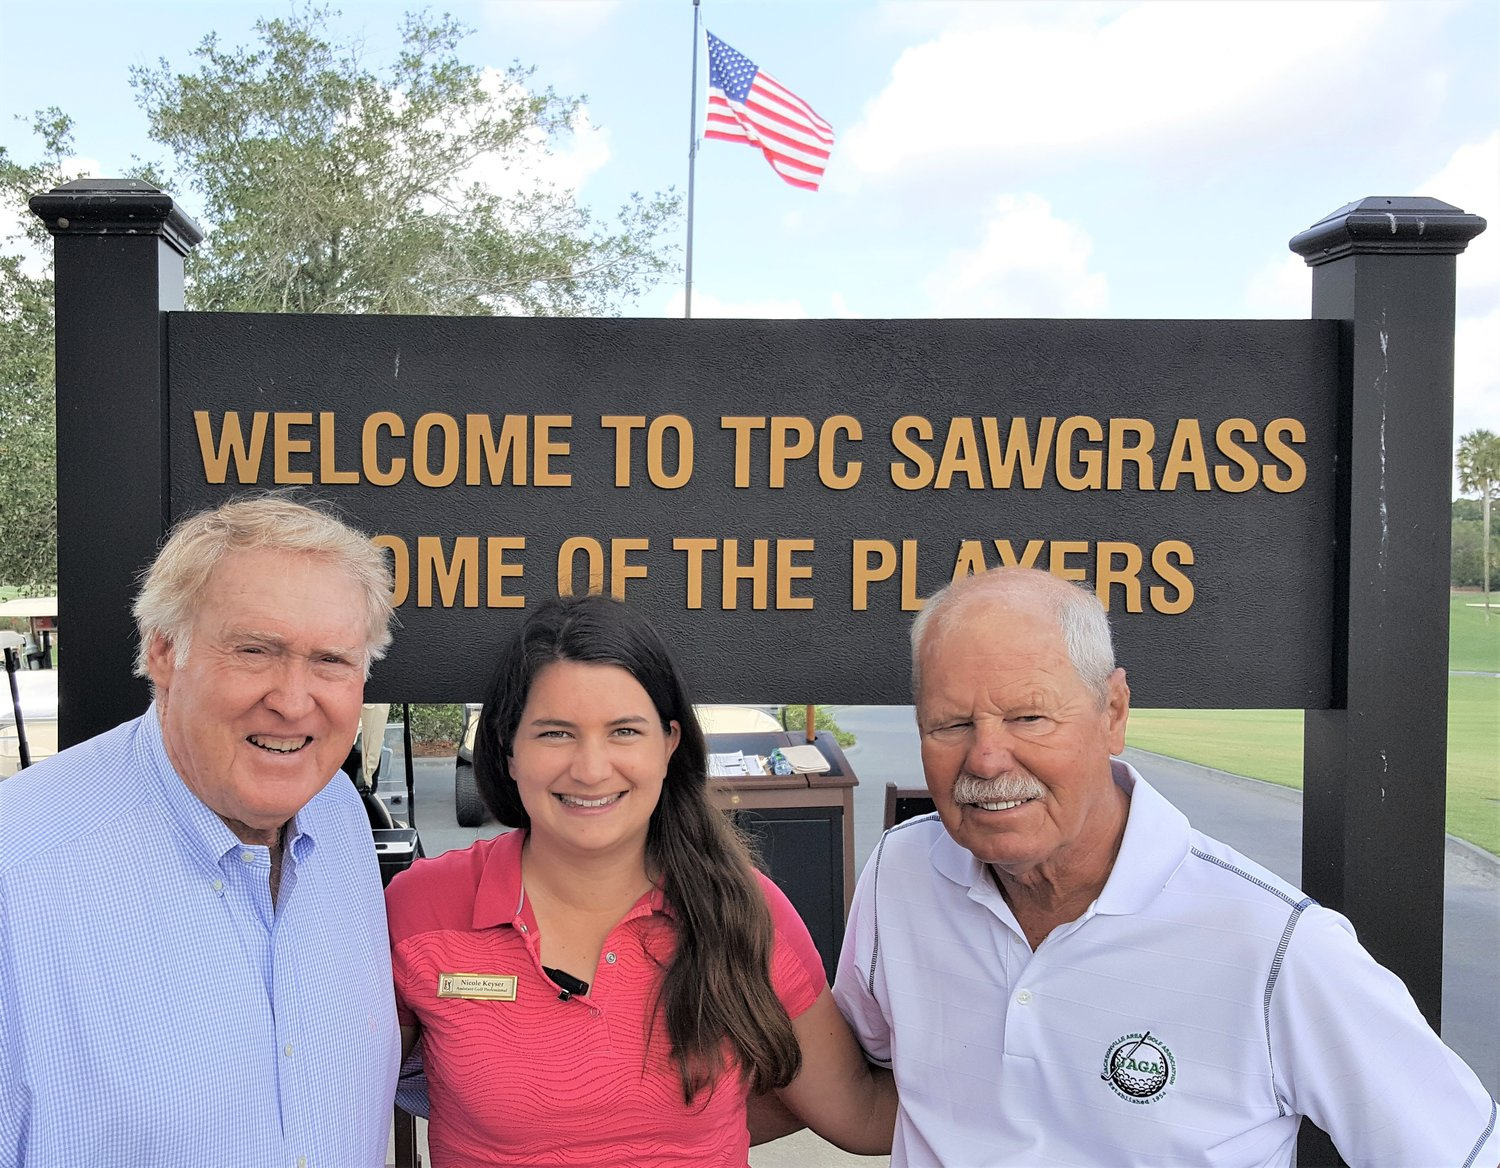 Level 2 PGA assistant professional and JAGA Scholarship recipient Nicole Keyser of TPC Sawgrass; JAGA Director Duke Butler III, TPC Sawgrass and JAGA Director, Deerwood CC; and Scholarship Trust Chairman, Ken Hicks (right)